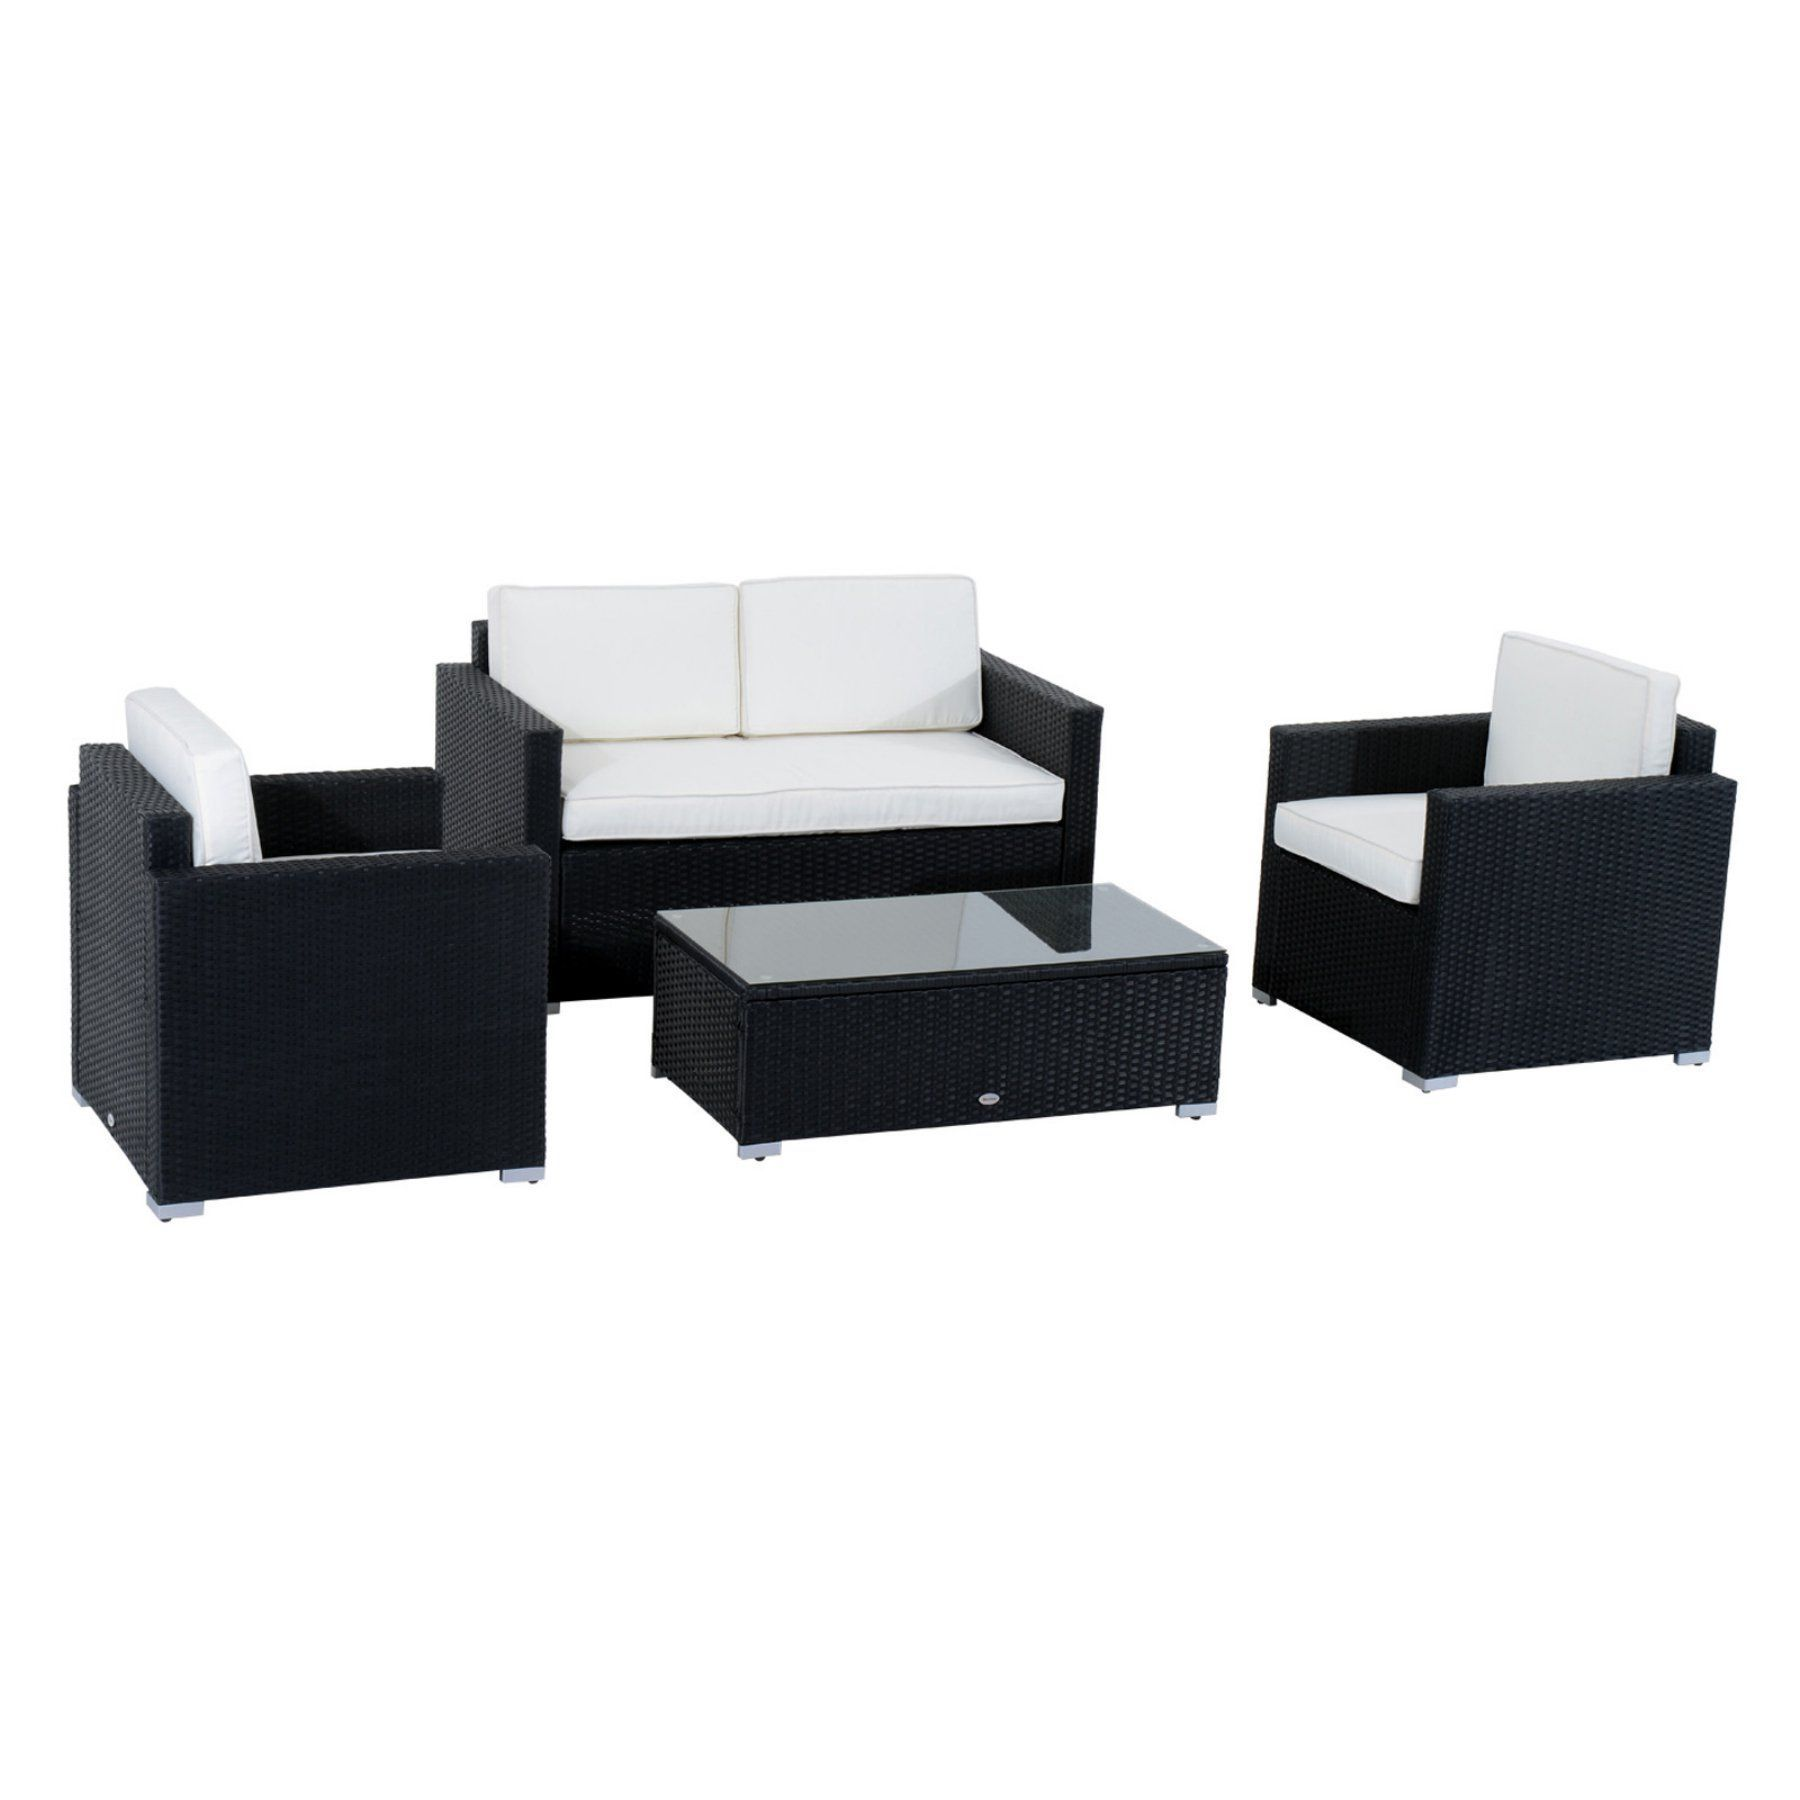 Outsunny piece cushioned outdoor rattan wicker sofa sectional